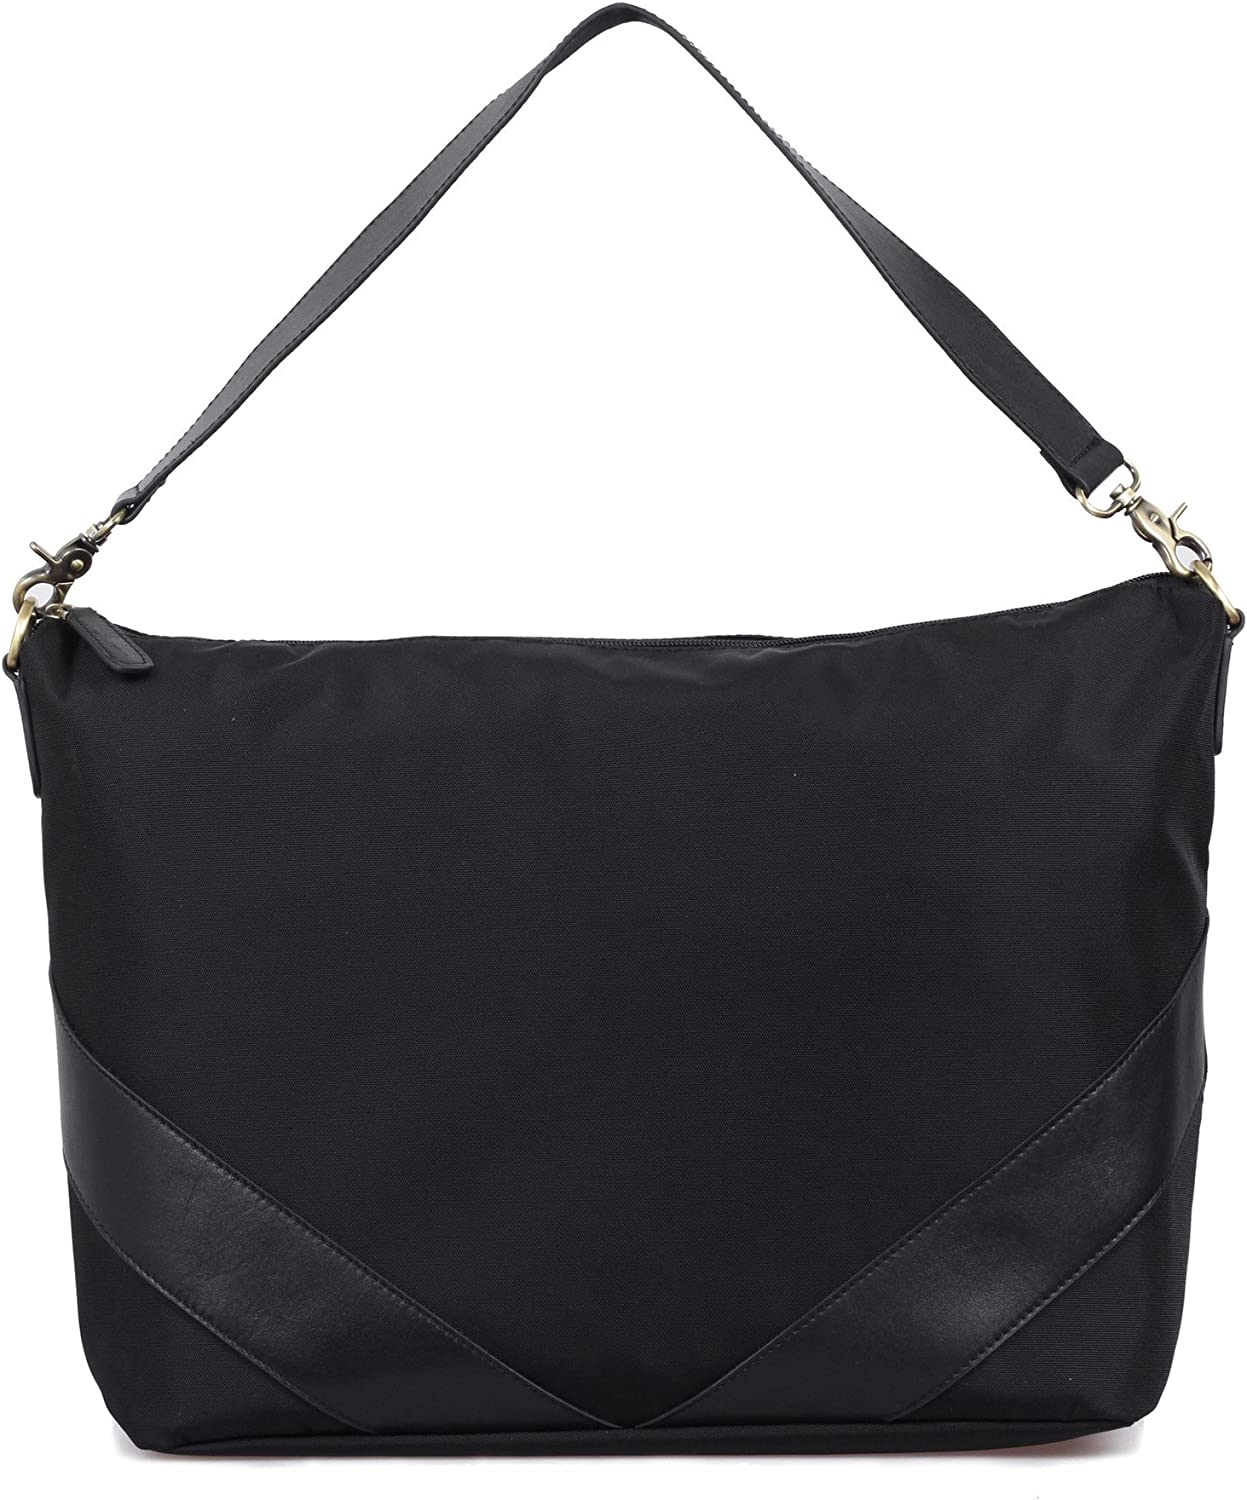 Jo Totes Hanover Camera and Laptop Bag, Nylon, Black